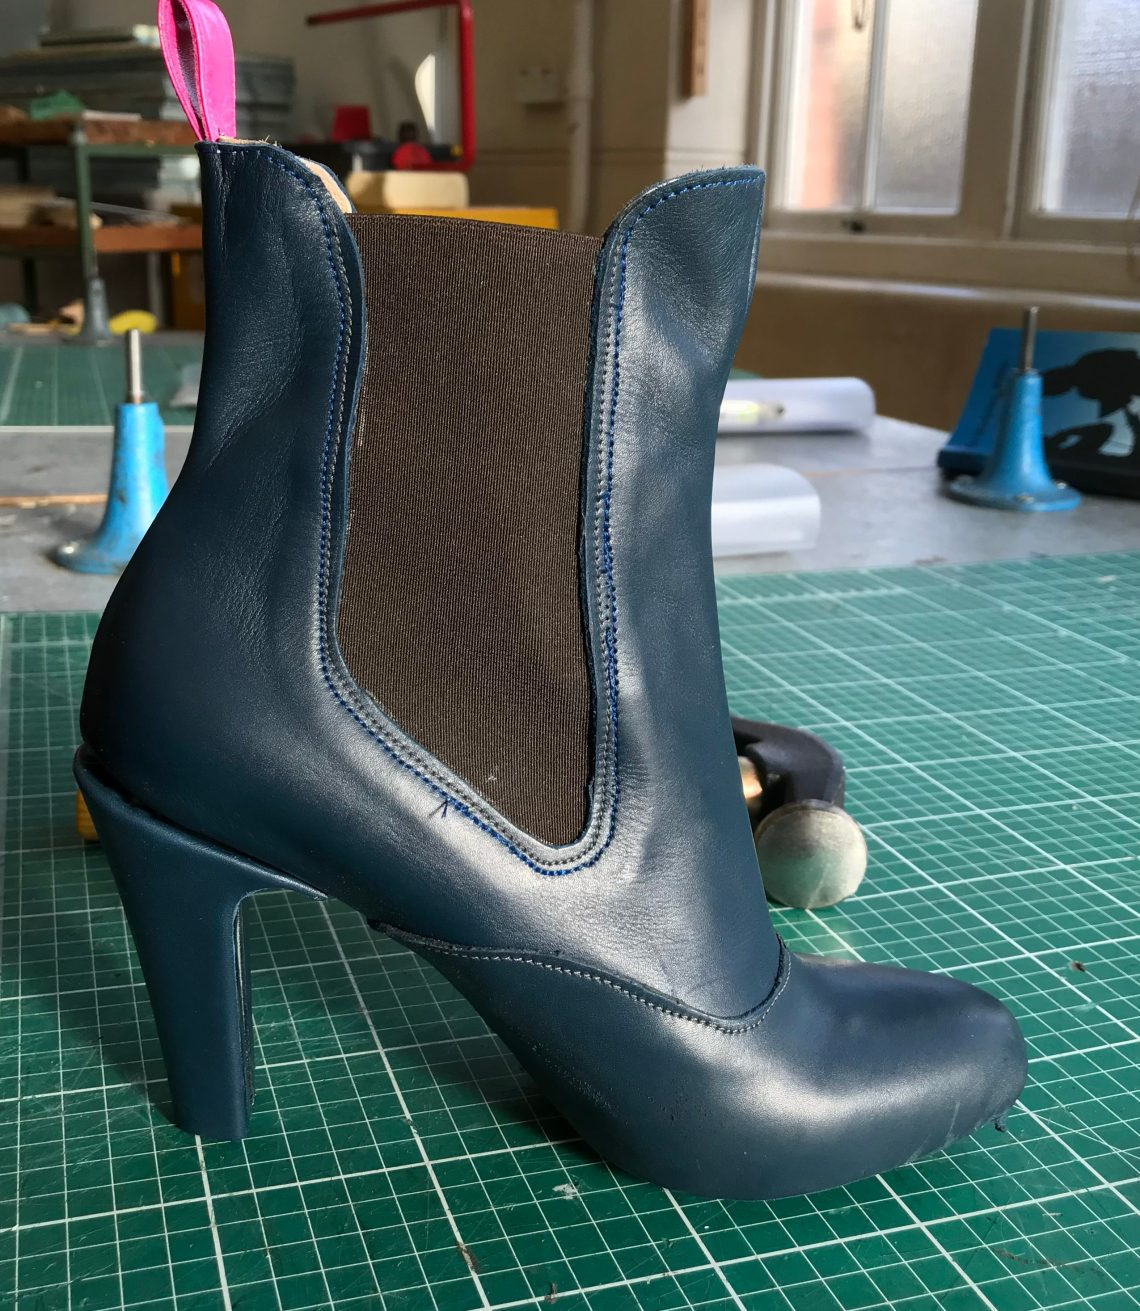 Ladies boot making